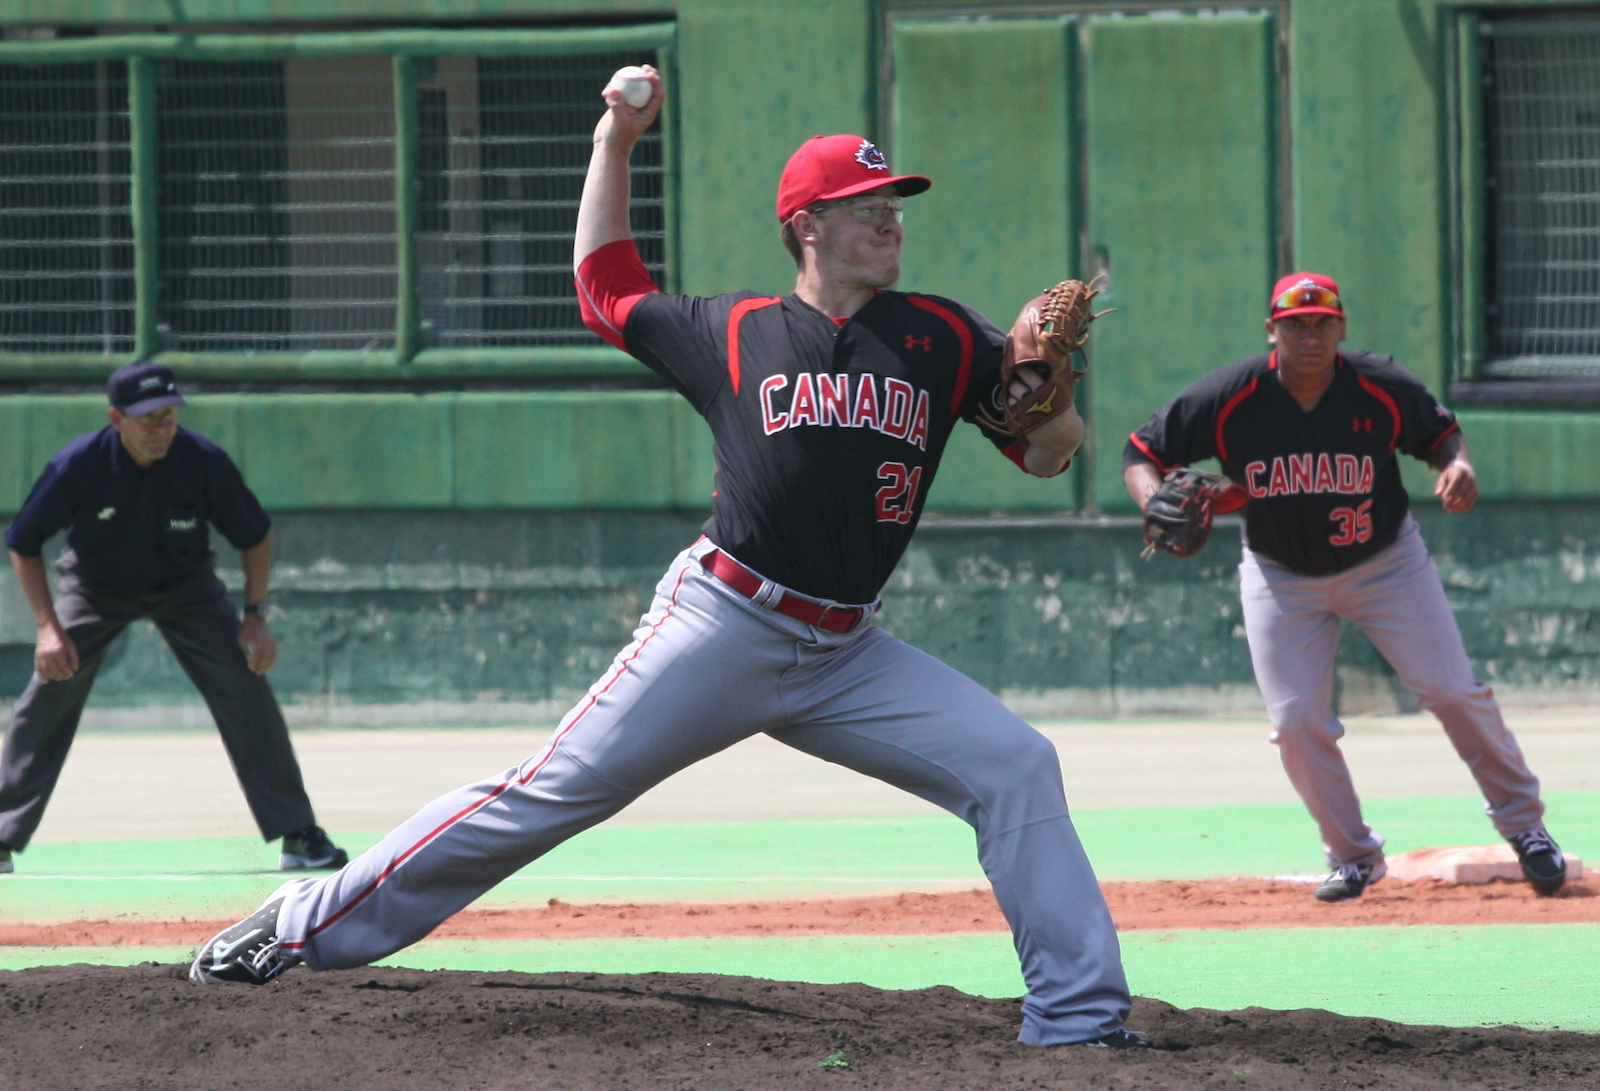 U-18: Burgmann terrific, Canada tops Taipei in opener